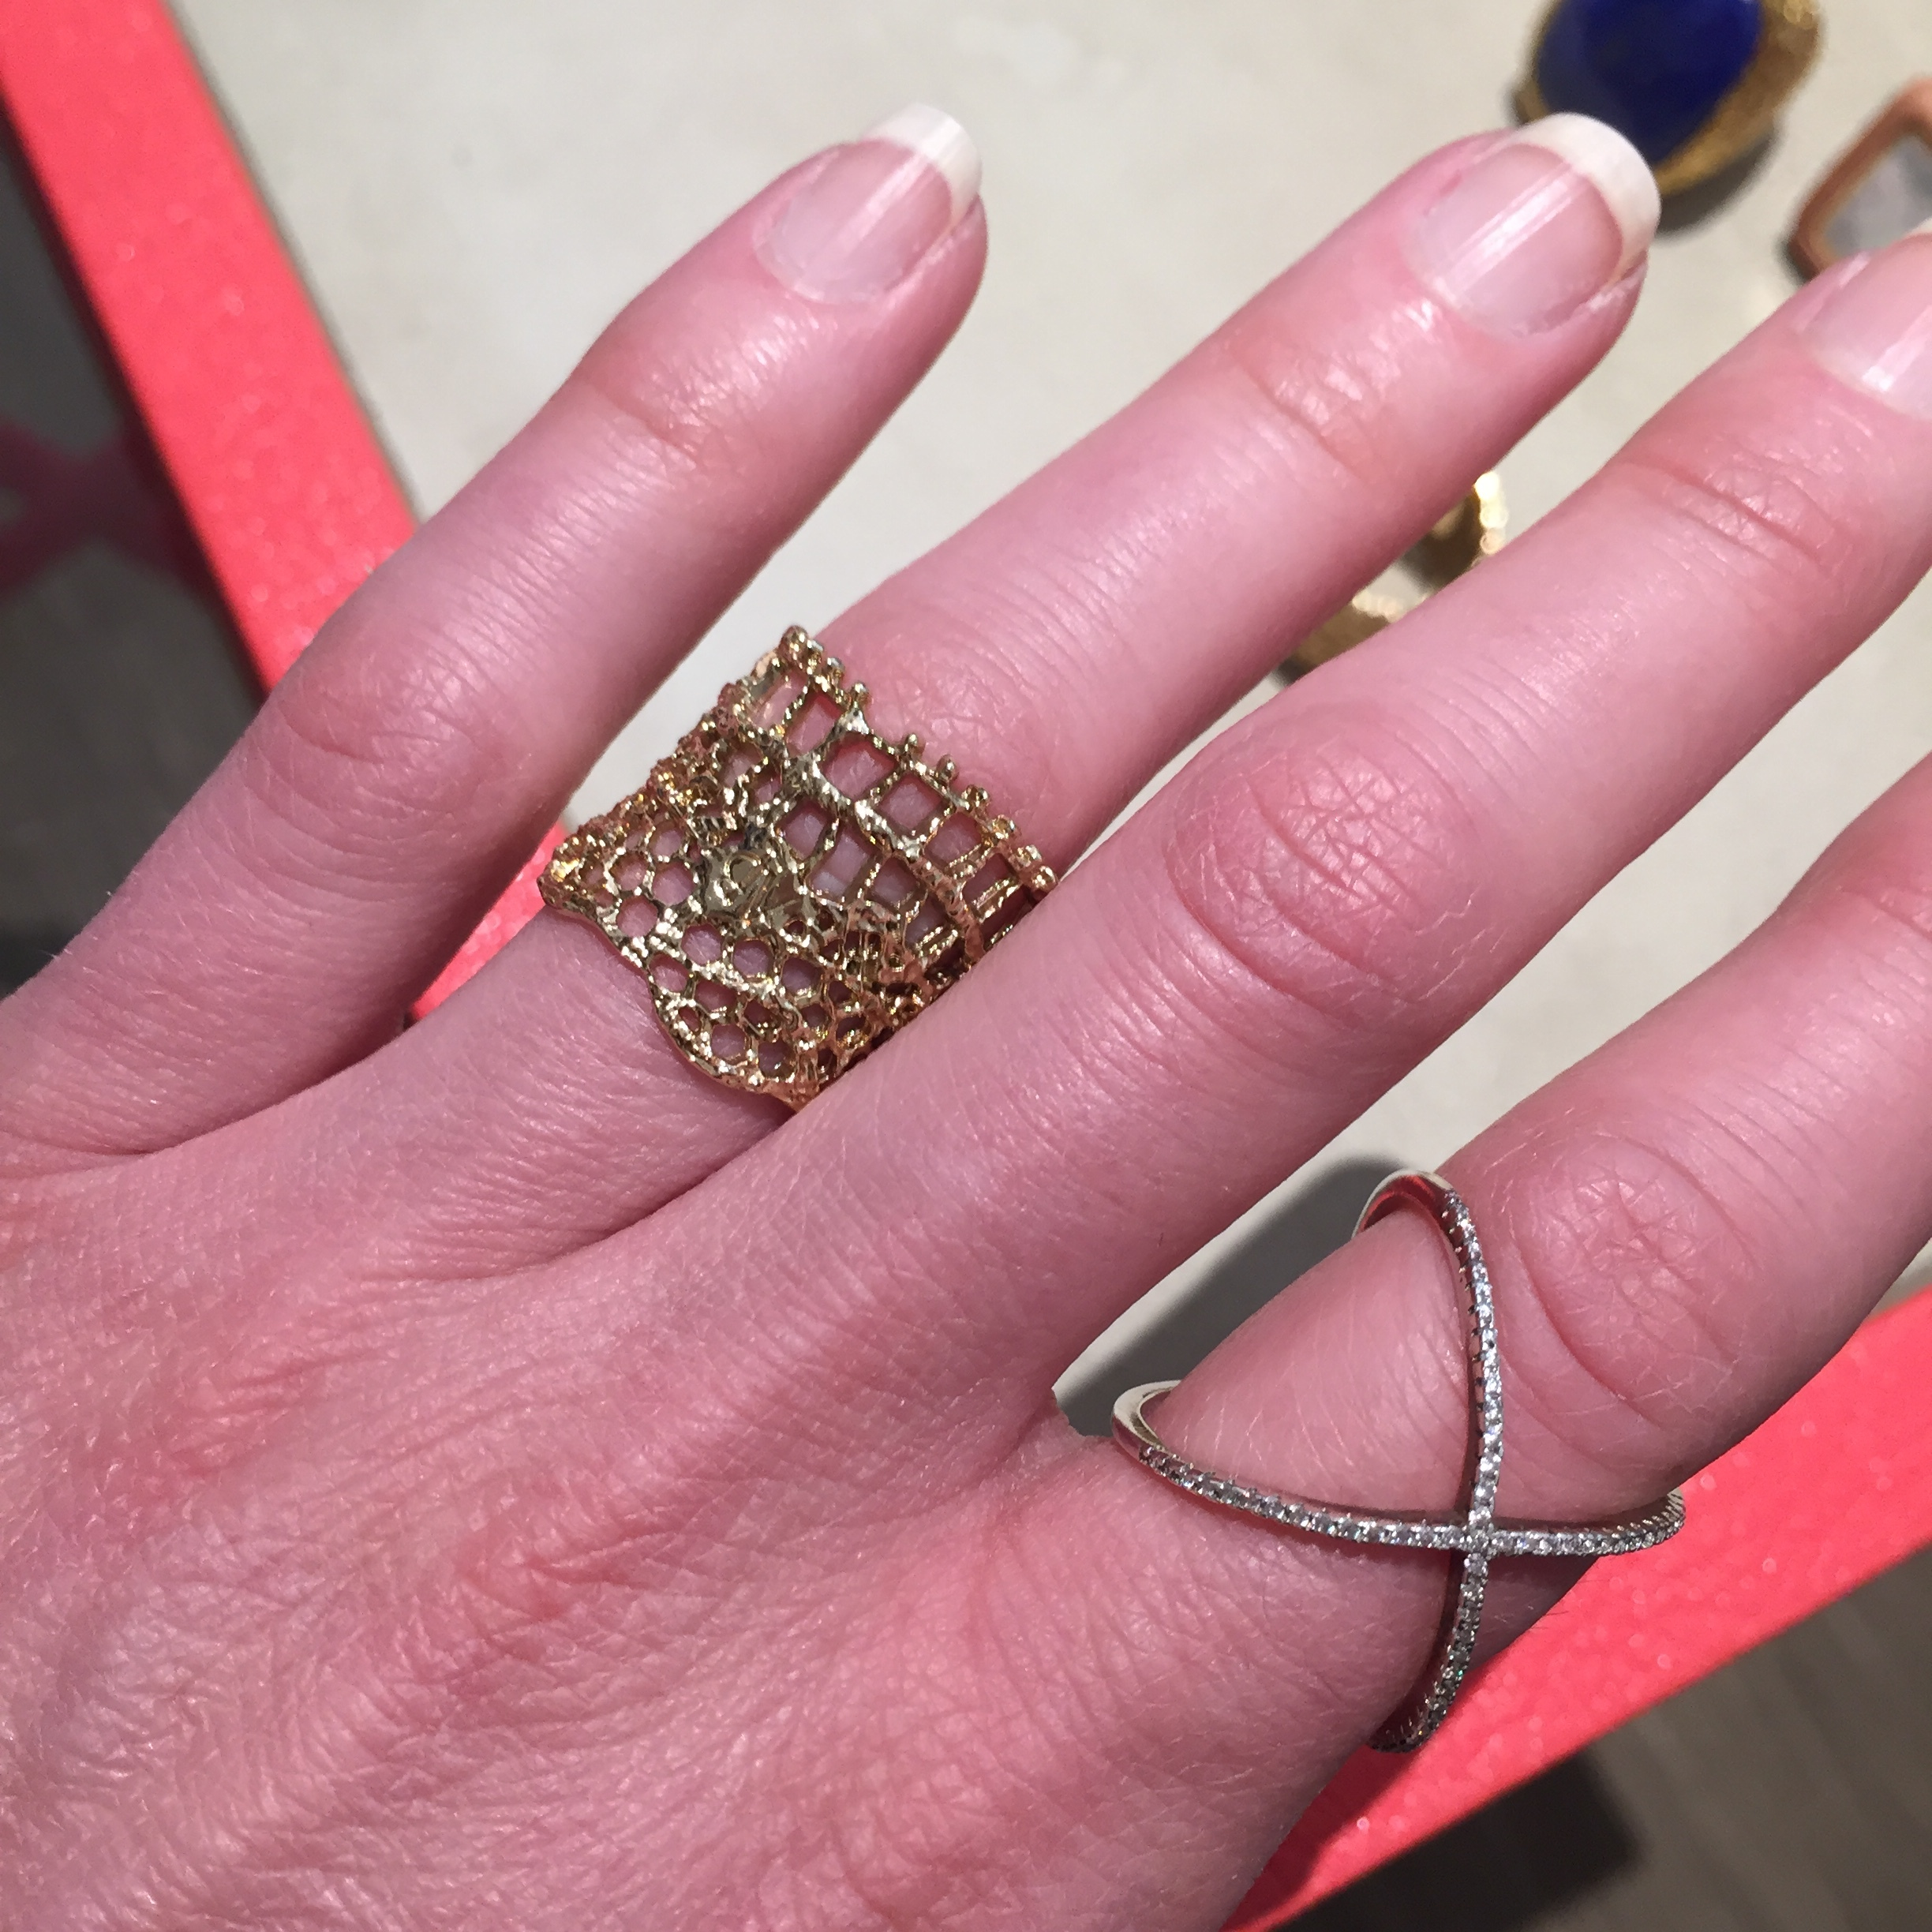 Vintage Lace Ring in Gold